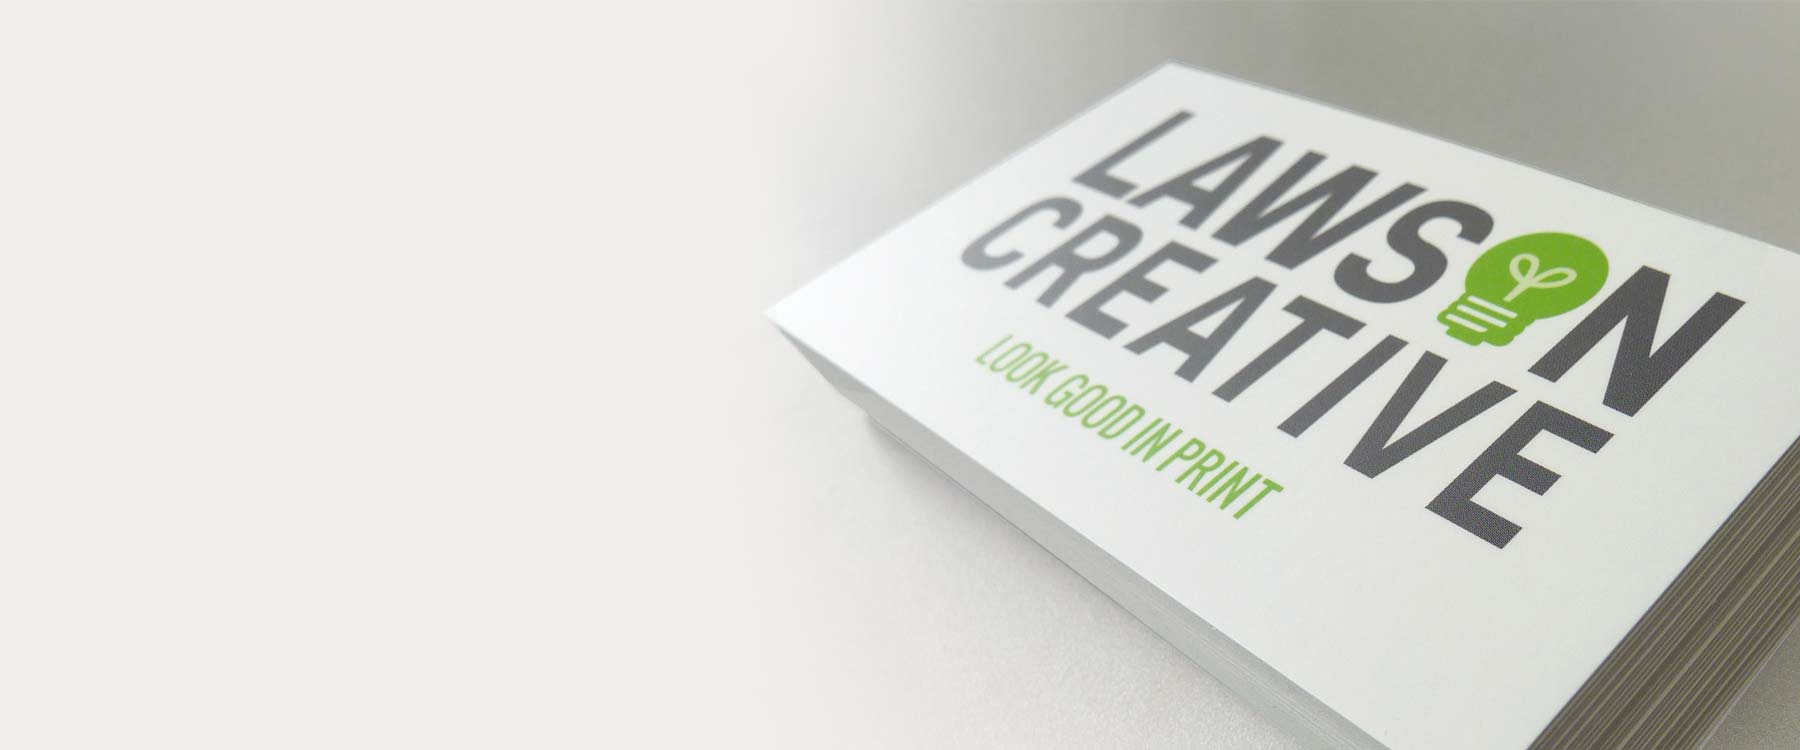 lawson-creative-look-good-in-print-business-cards-slider